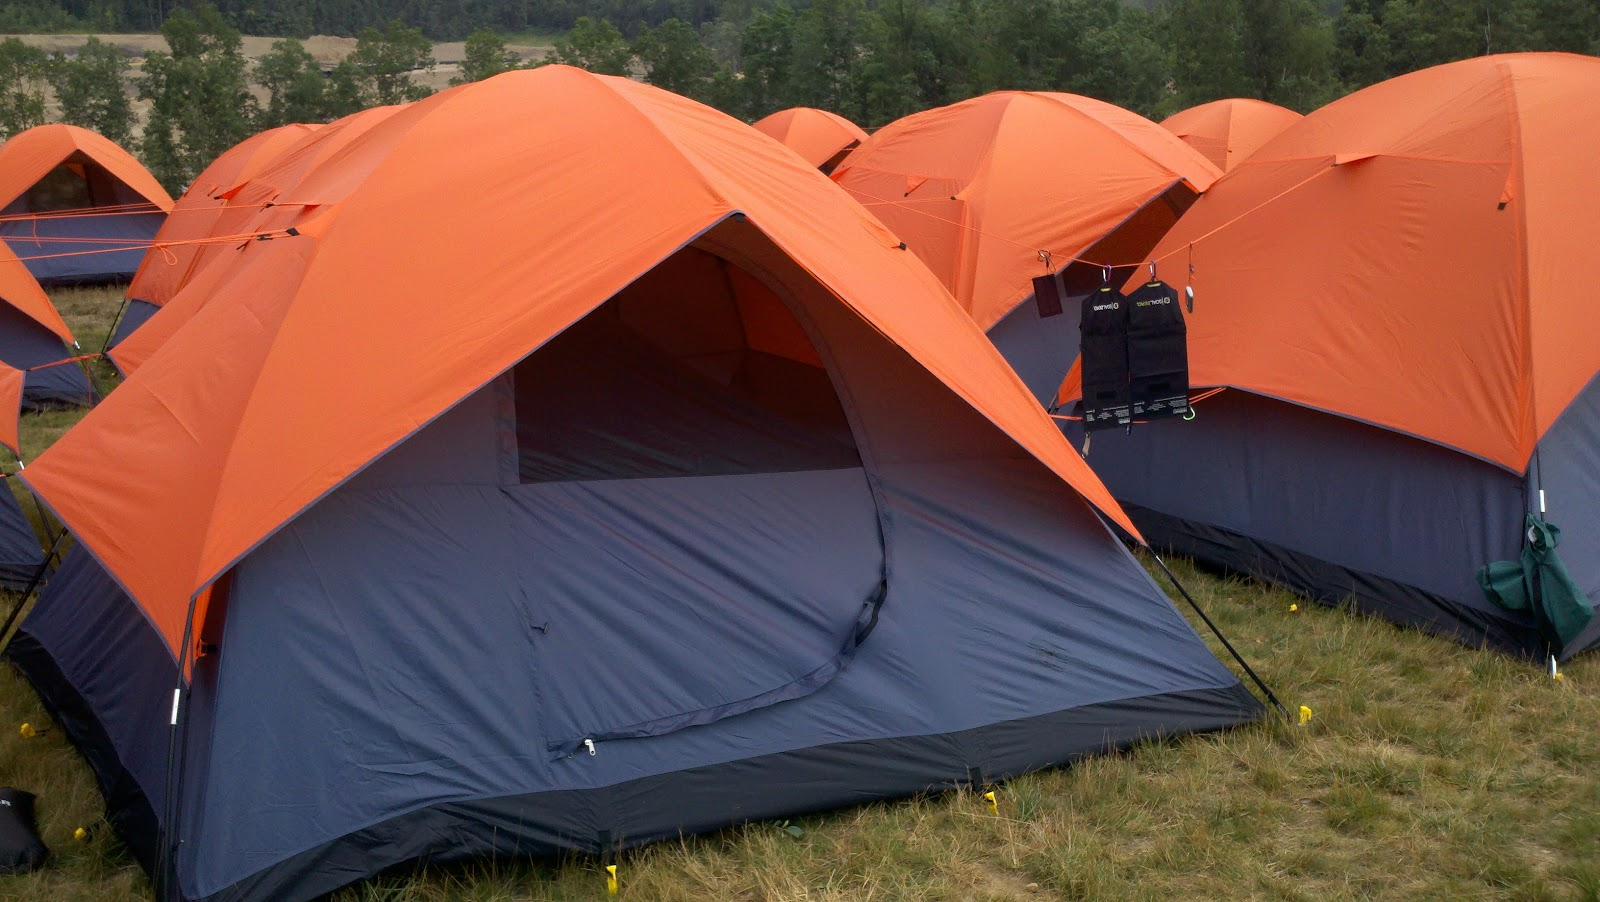 Tents to be used by scouts at 2013 National Scout Jamboree. & emeritbadges: Jamboree Tents